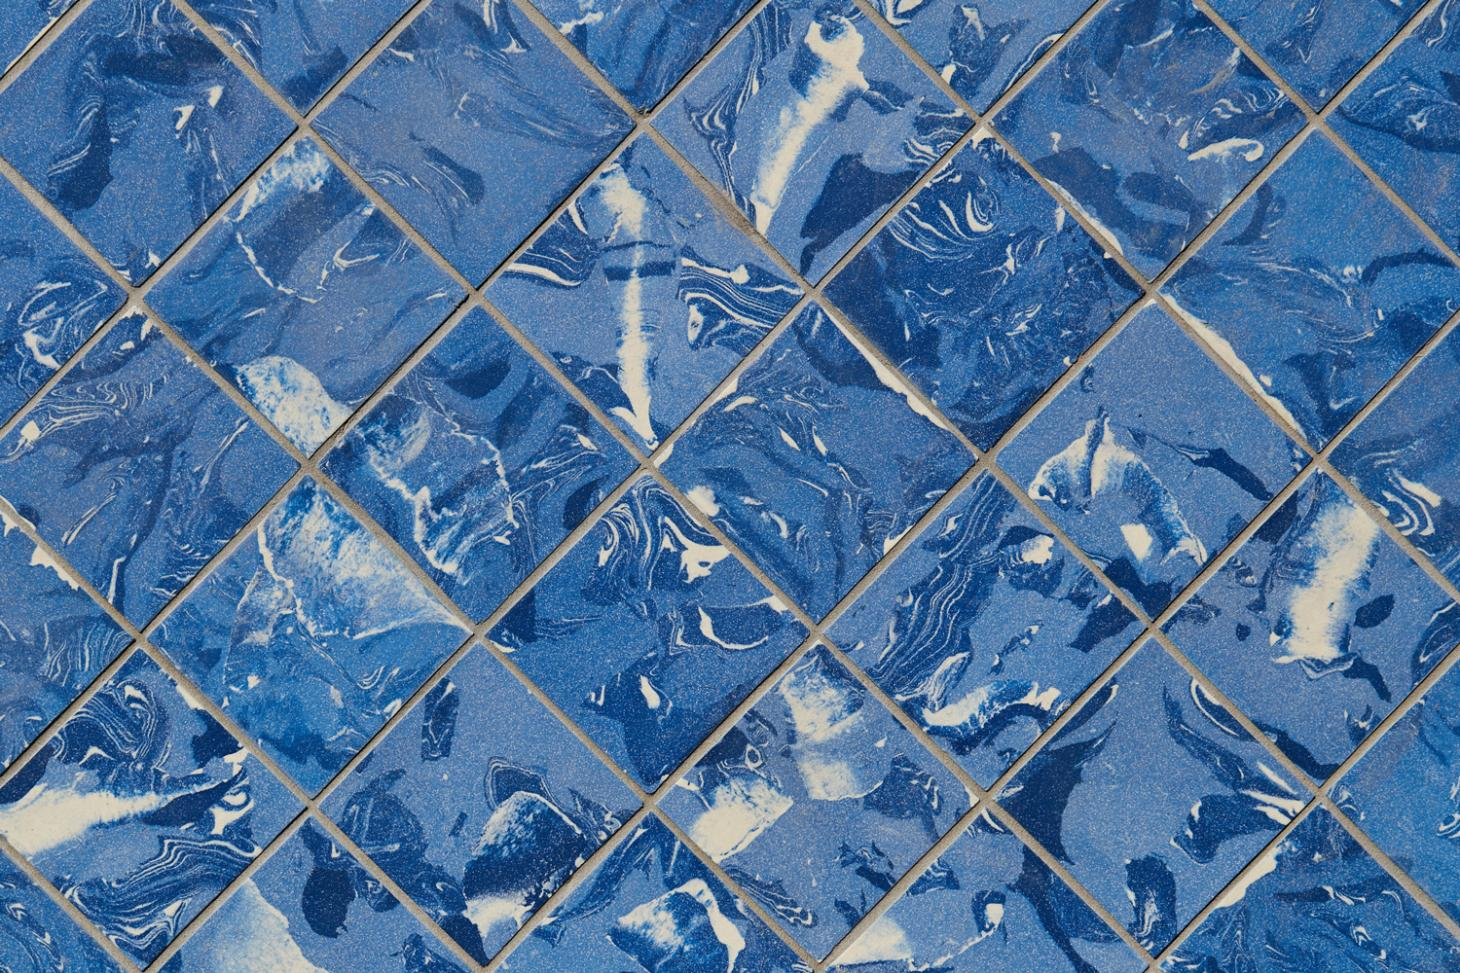 Assemble tiles detail view